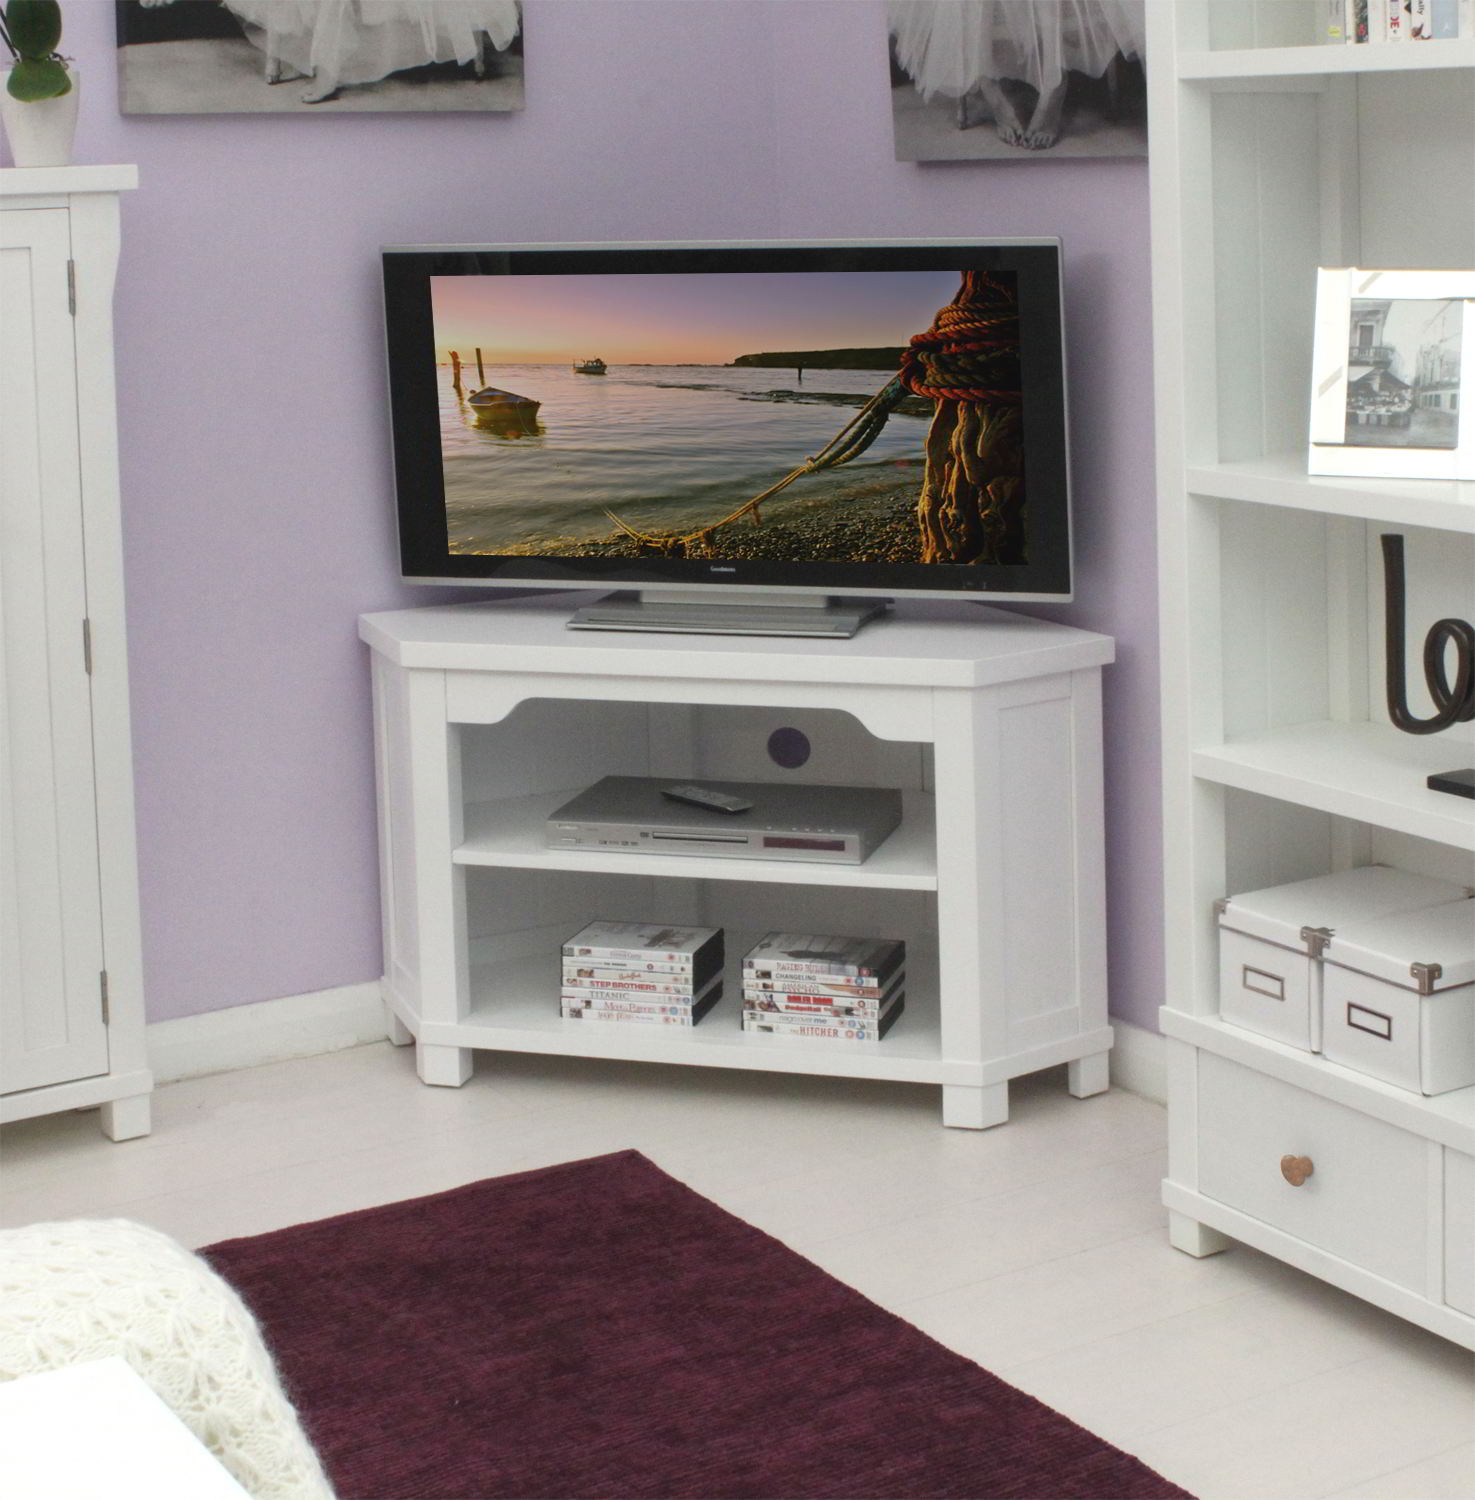 New england white painted living room furniture corner television cabinet stand ebay for Tv corner cabinets living room